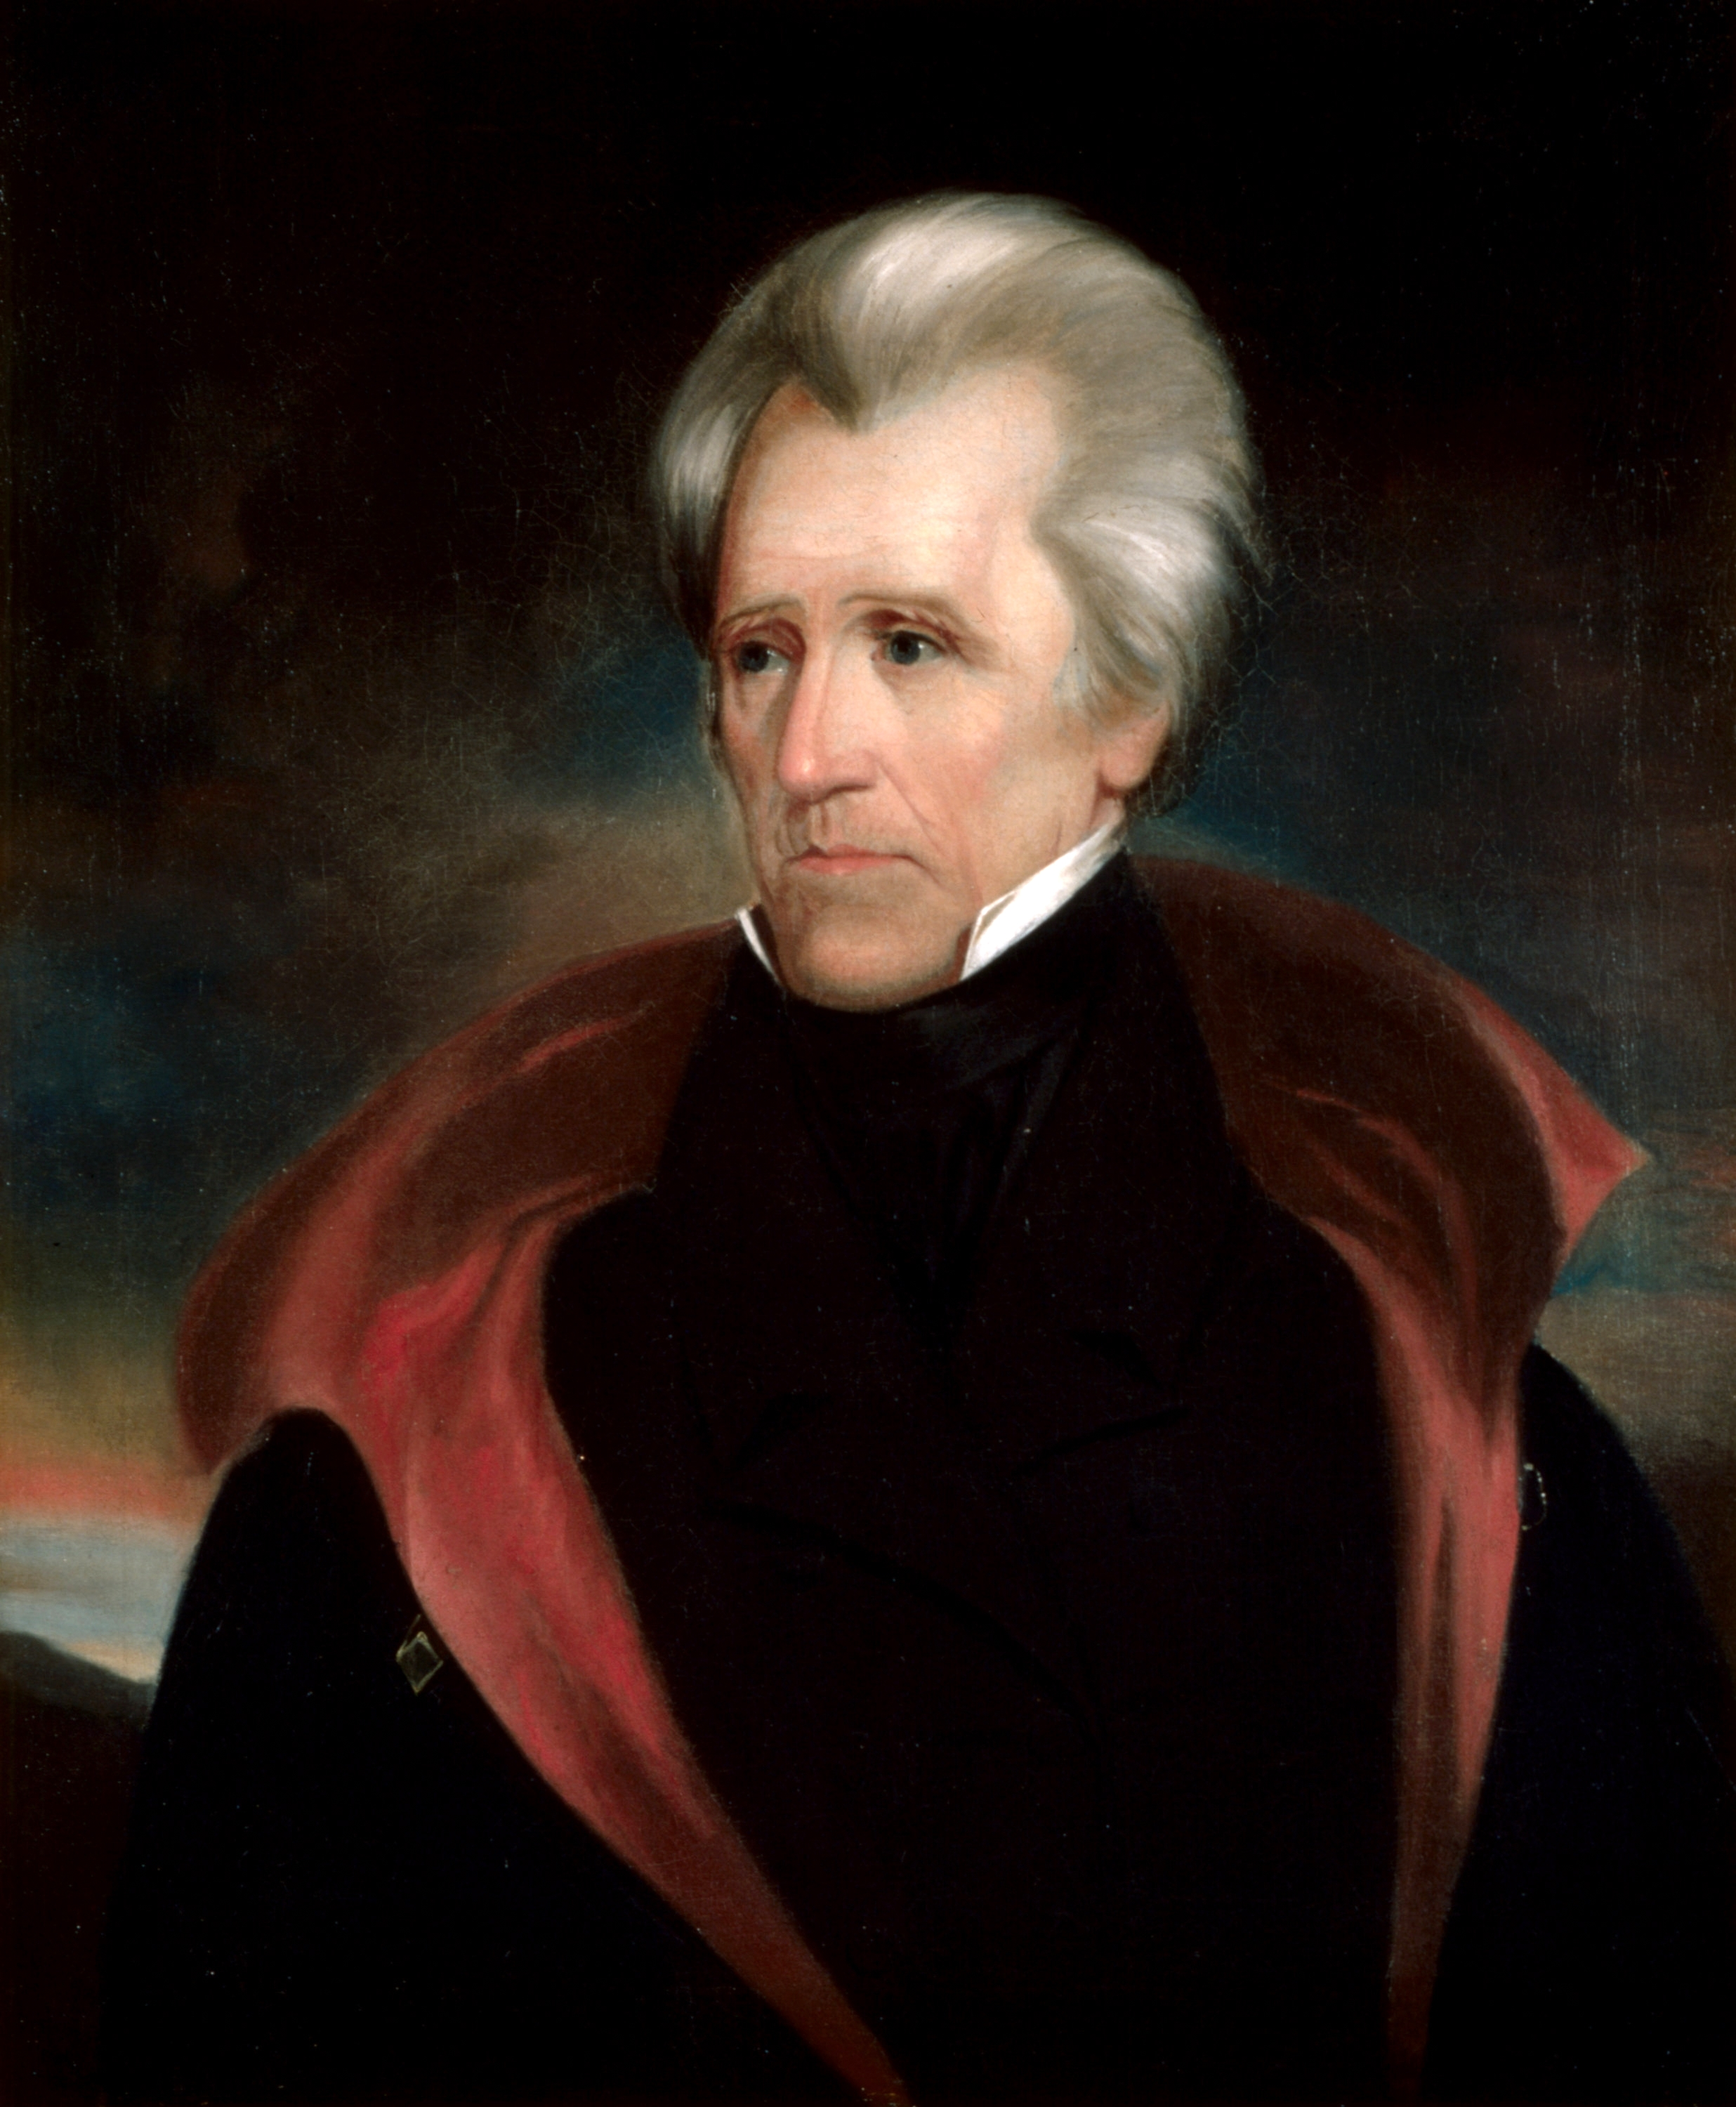 Portrait of Andrew Jackson  by Ralph E.W. Earl, c. 1835